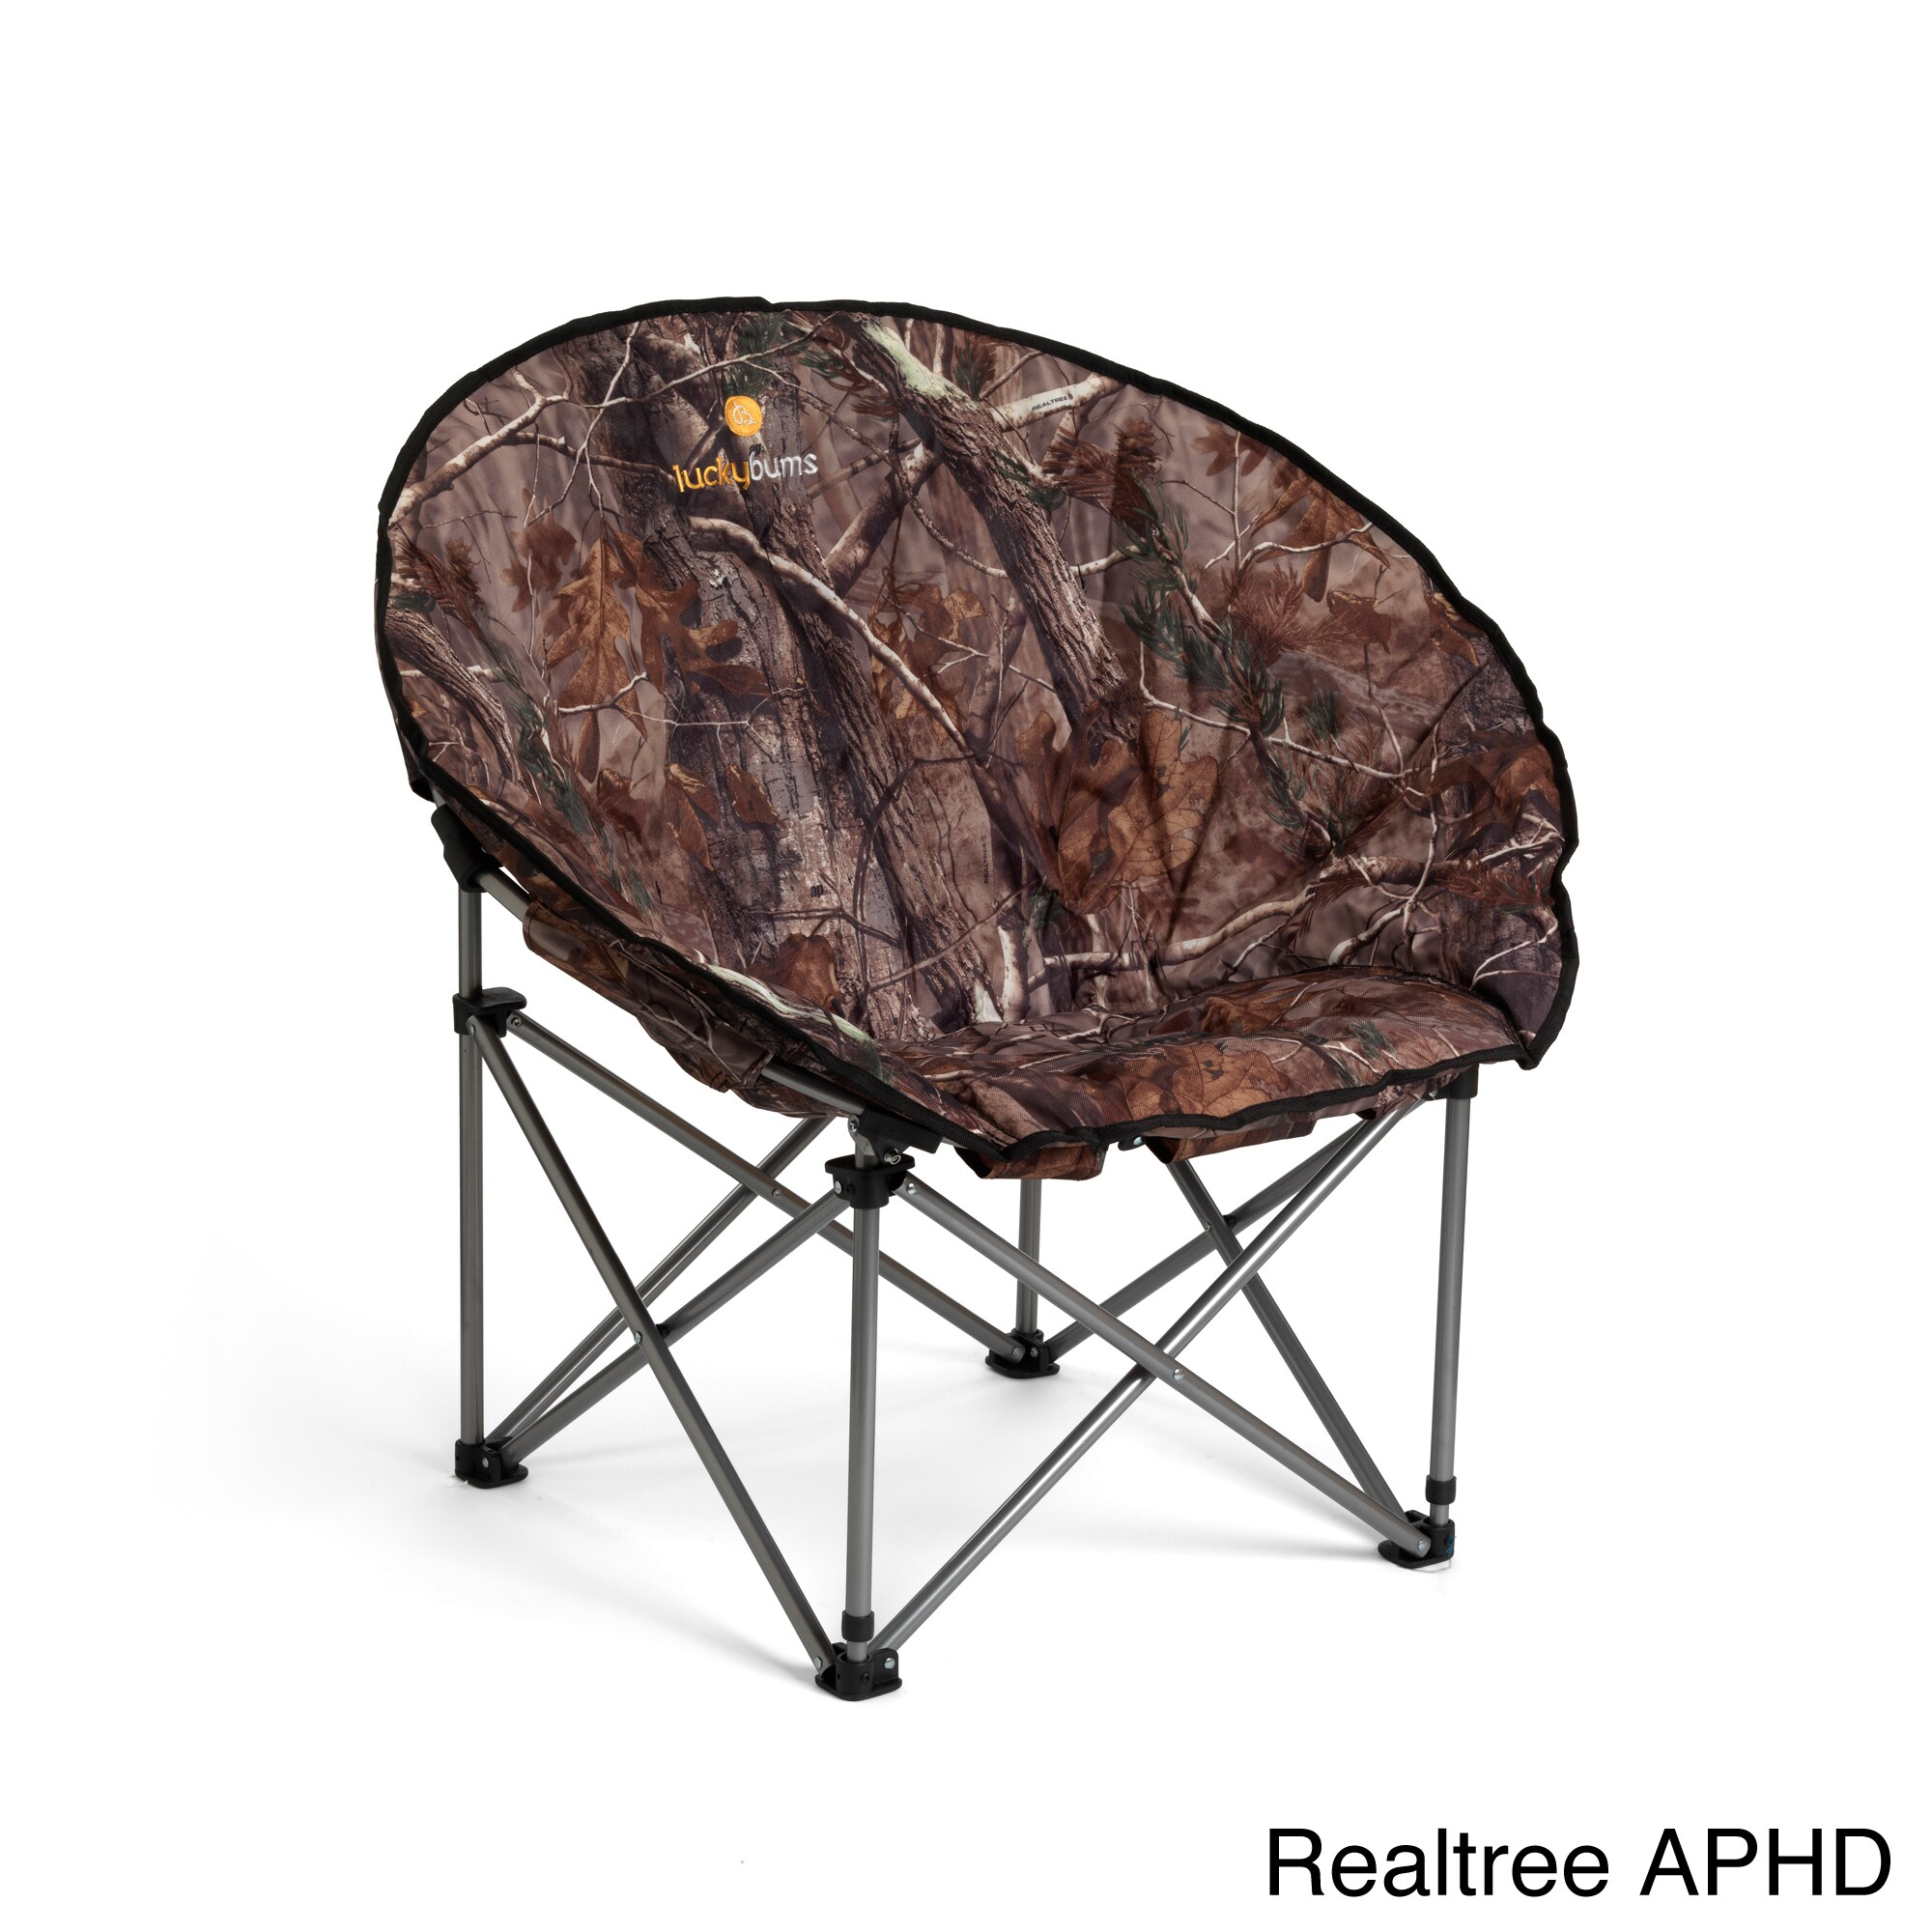 lucky bums camp chair grey side shop youth moon free shipping today overstock com 8028421